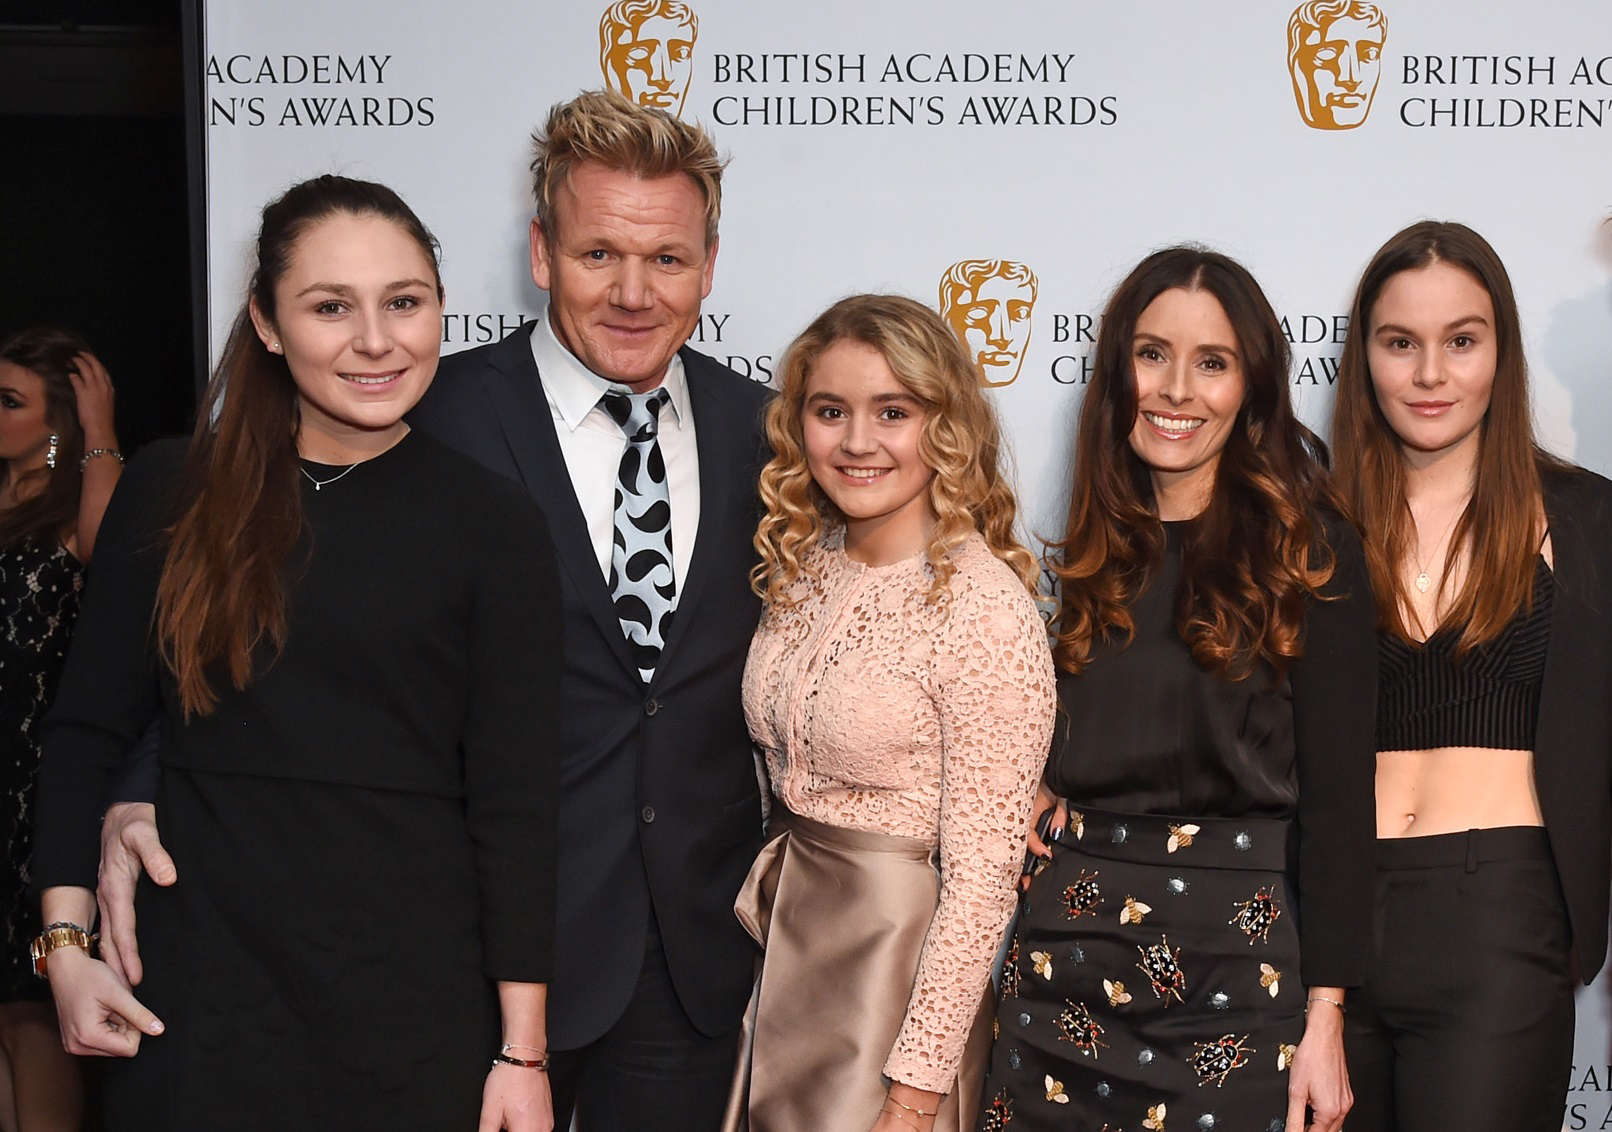 Slide 10 of 18: LONDON, ENGLAND - NOVEMBER 20:  (L to R) Megan Ramsay, Gordon Ramsay, Matilda Ramsay, Tana Ramsay, Holly Ramsay and Jack Ramsay at the BAFTA Children's Awards at The Roundhouse on November 20, 2016 in London, England.  (Photo by David M. Benett/Dave Benett/Getty Images)